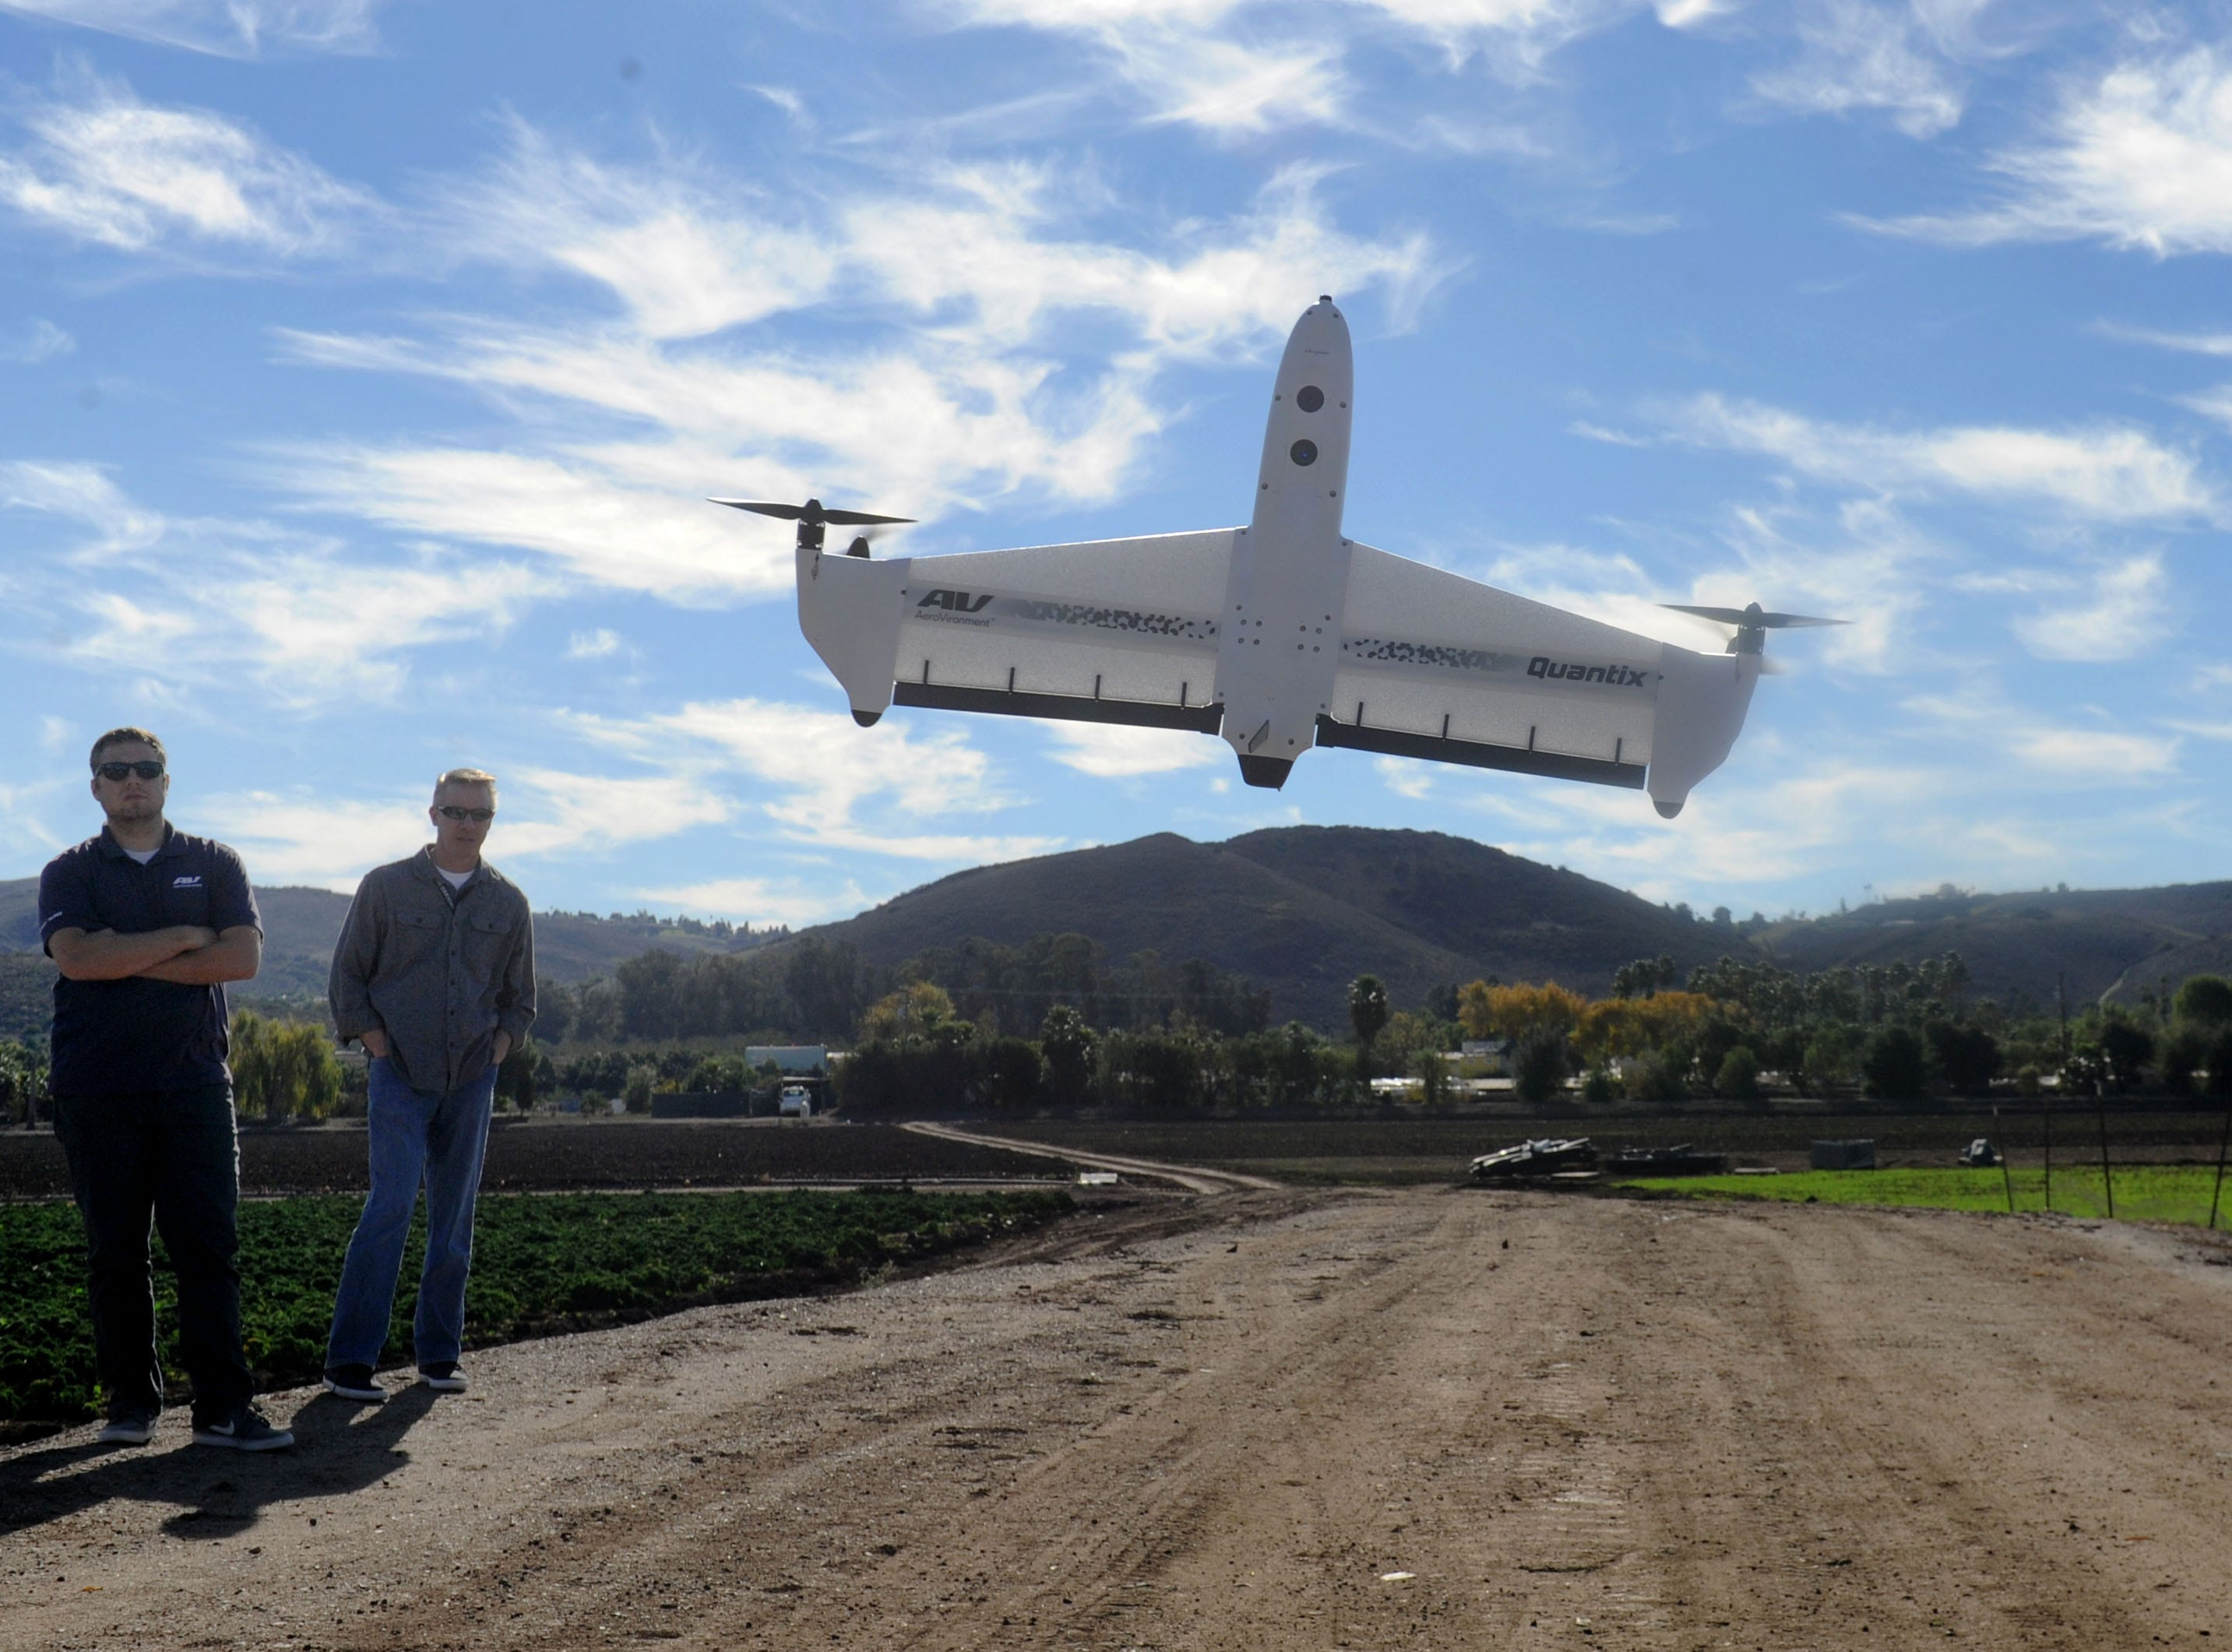 Cory Schaefer, left, and Brad Carraway watch the AeroVironment Quantix drone fly in an open field in Moorpark. The drone maker is moving its headquarters to Simi Valley. It already manufactures drones in Ventura County.